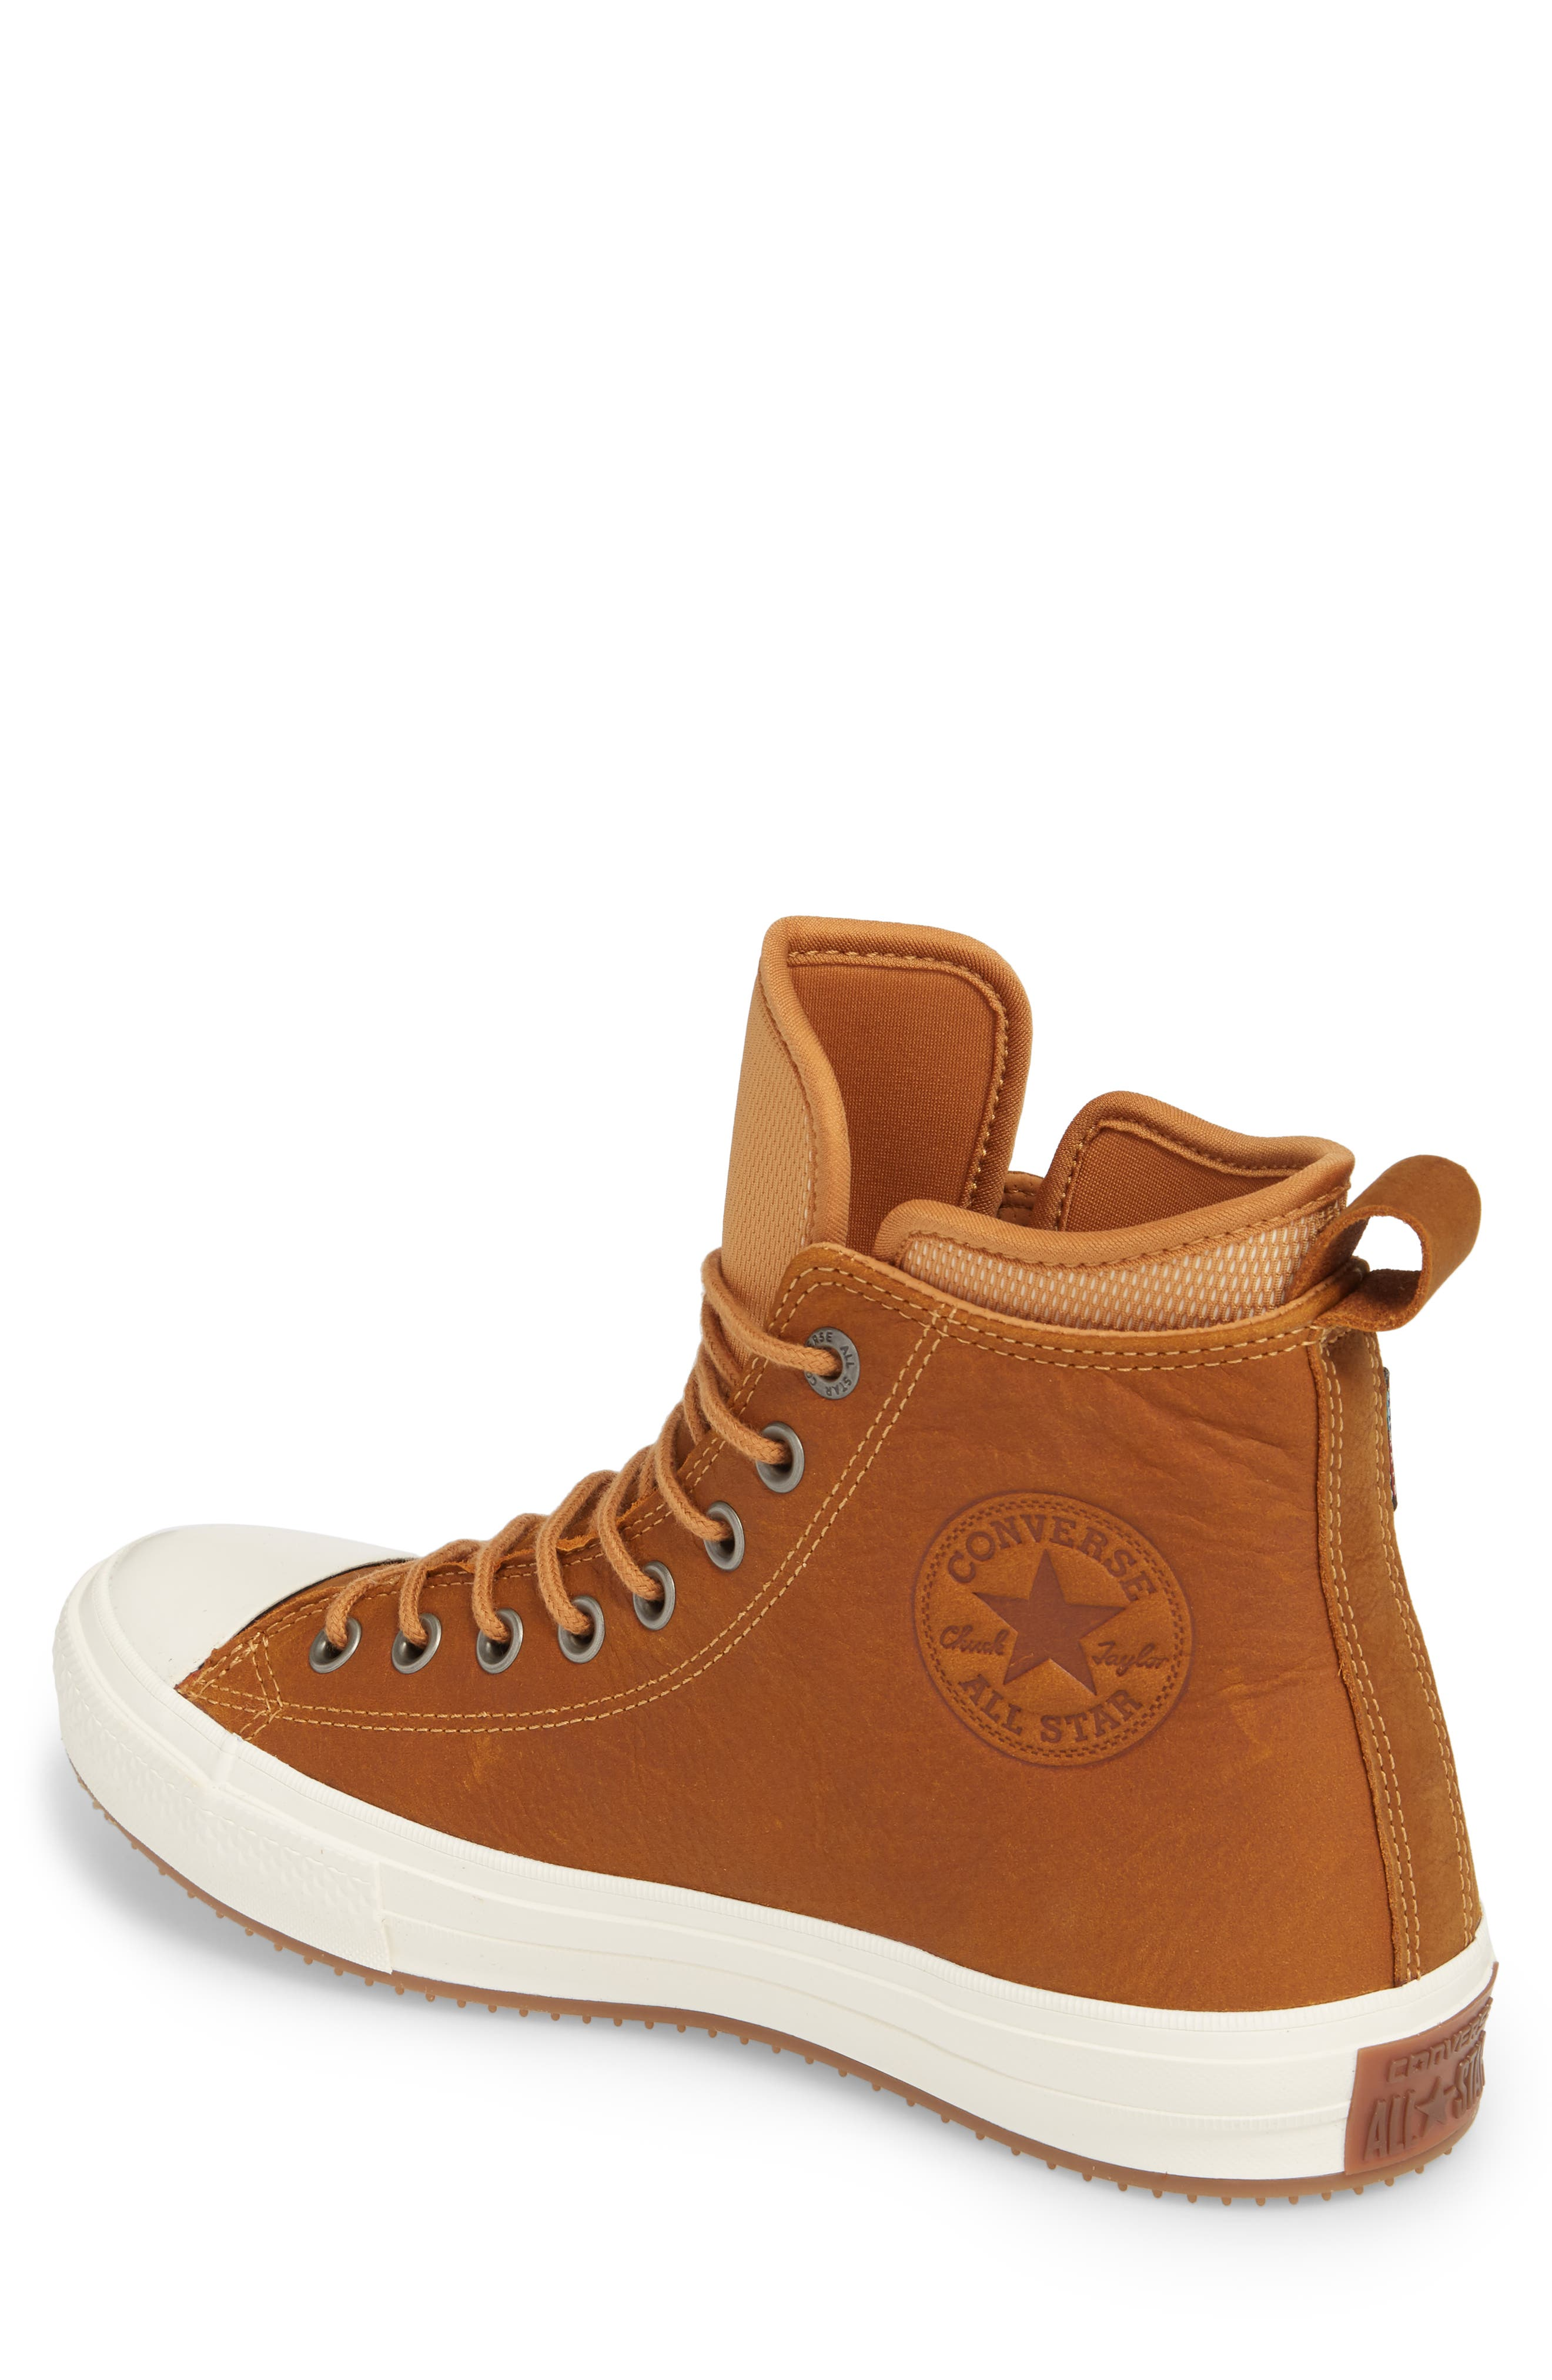 Chuck Taylor<sup>®</sup> All Star<sup>®</sup> Waterproof Sneaker,                             Alternate thumbnail 2, color,                             Raw Sugar